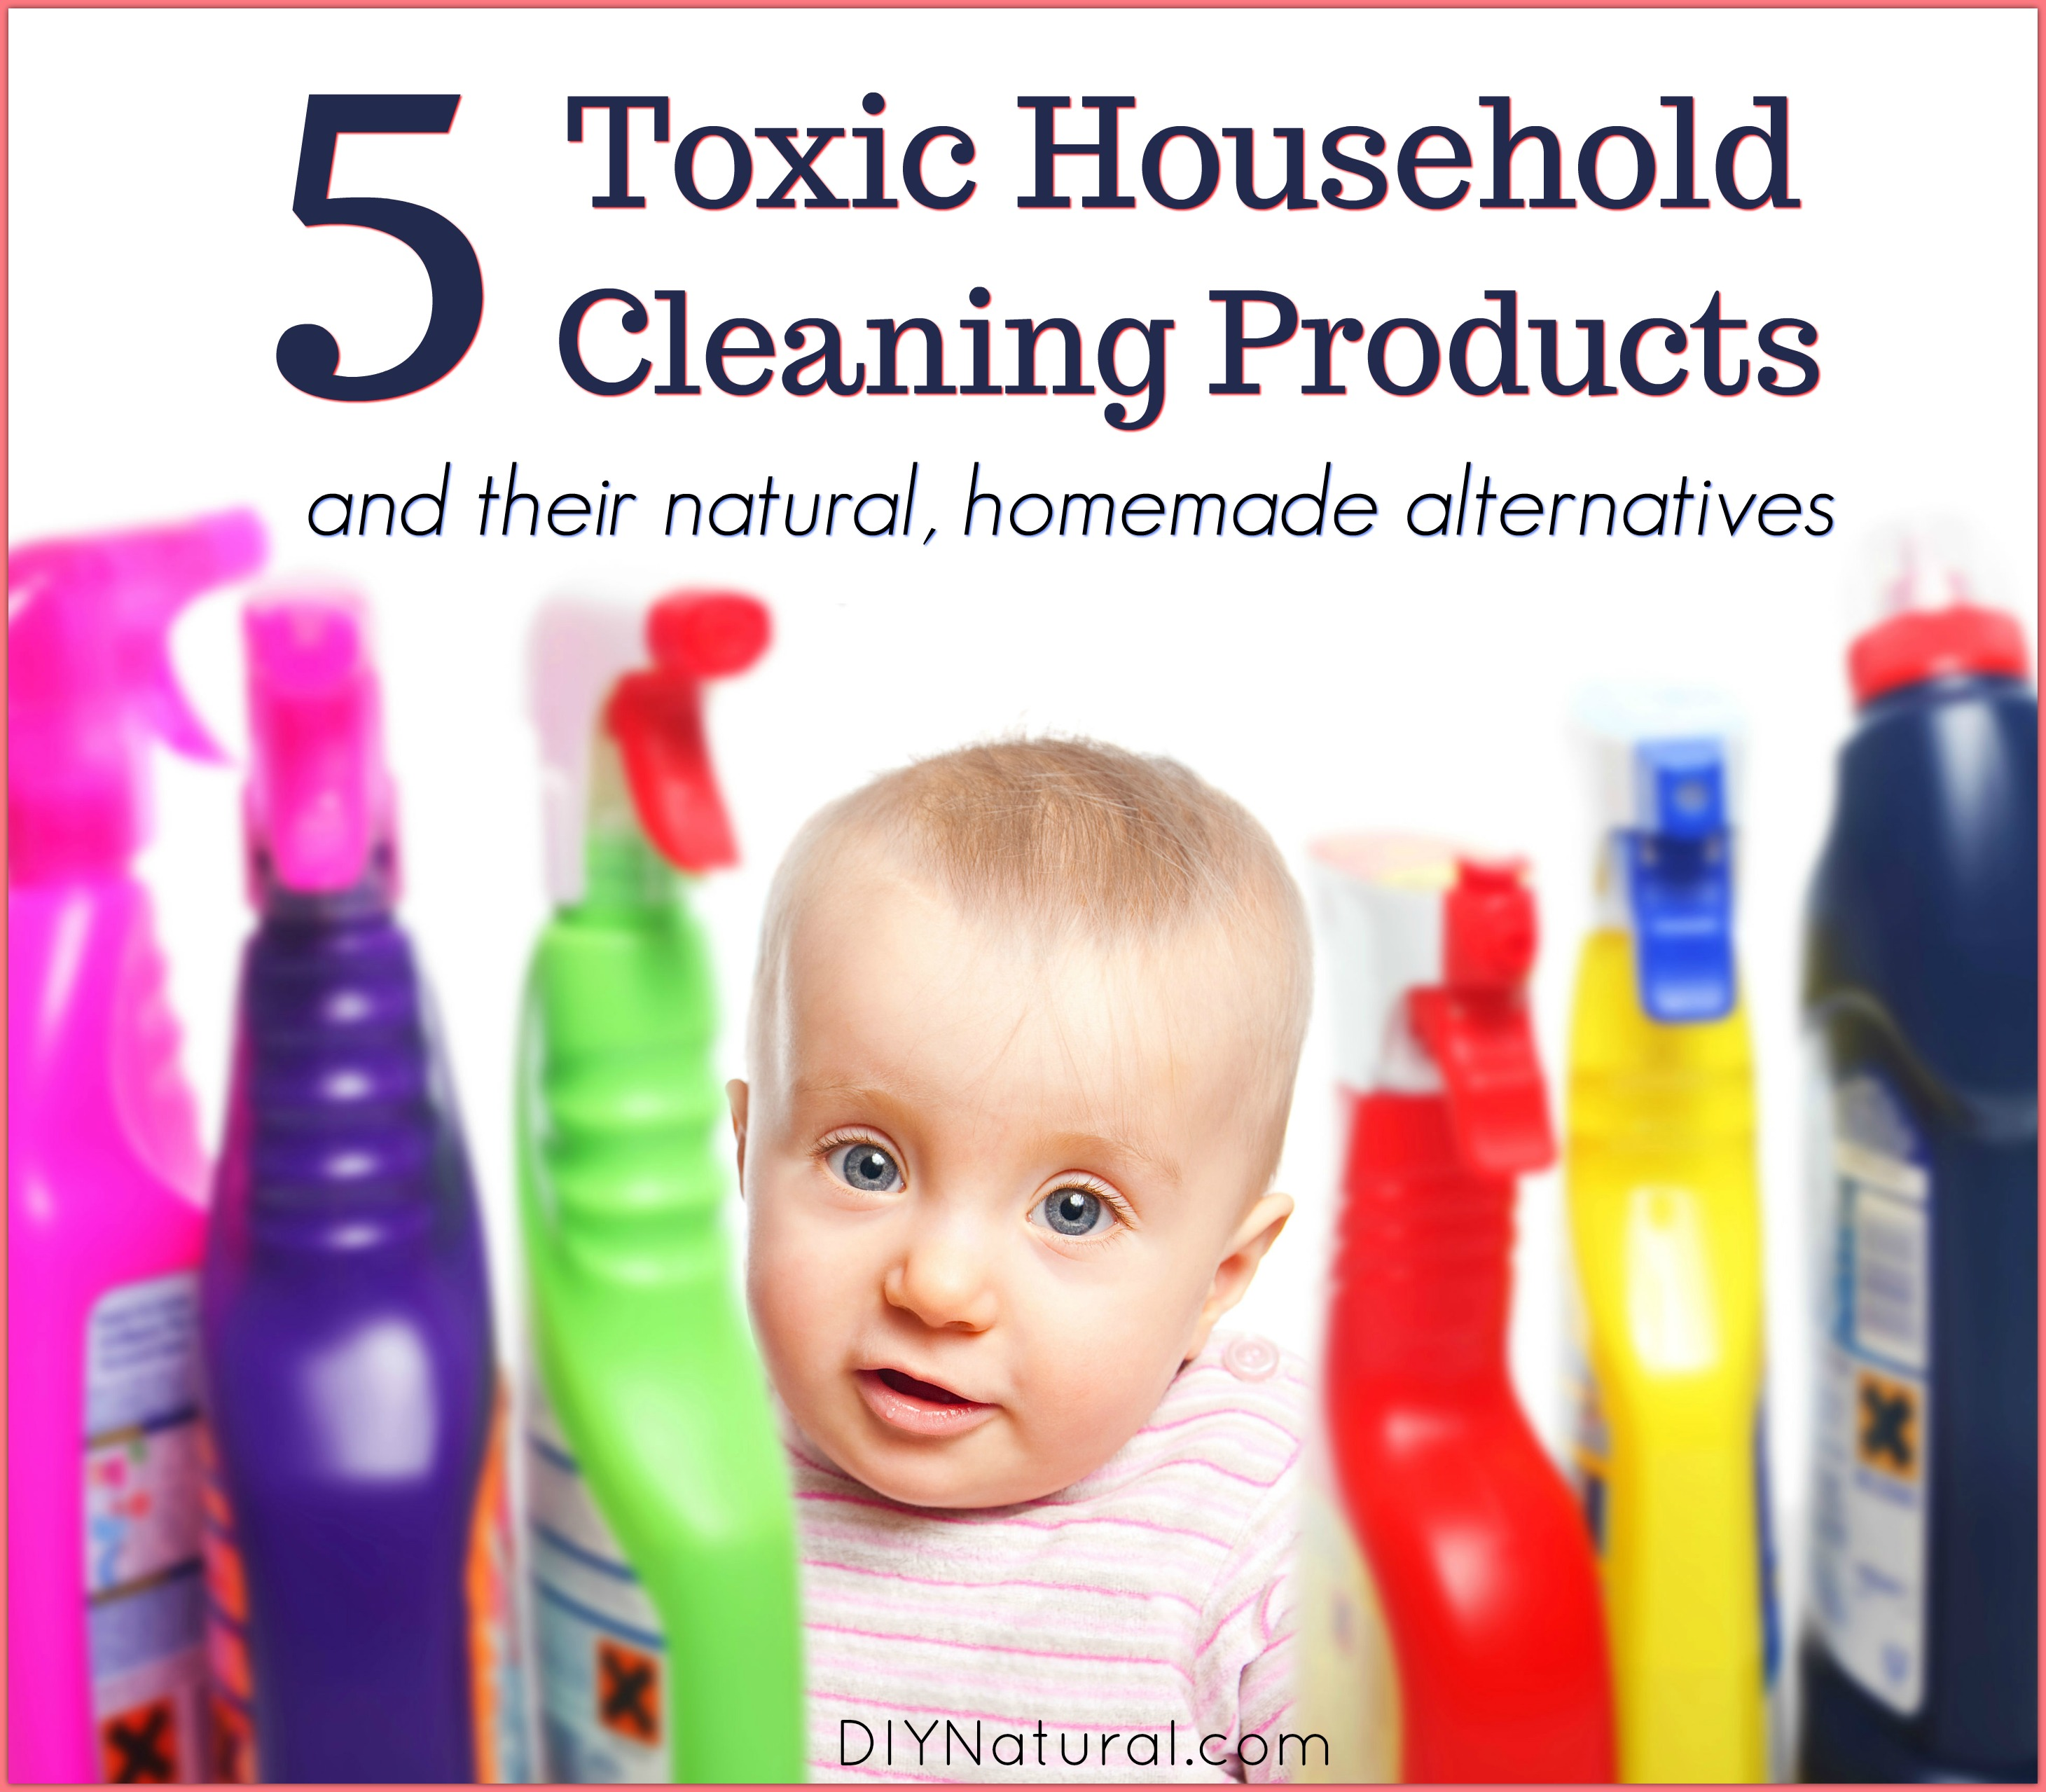 Deadly Household Items: Toxic Cleaning Products: 5 Toxic Products And 5 DIY